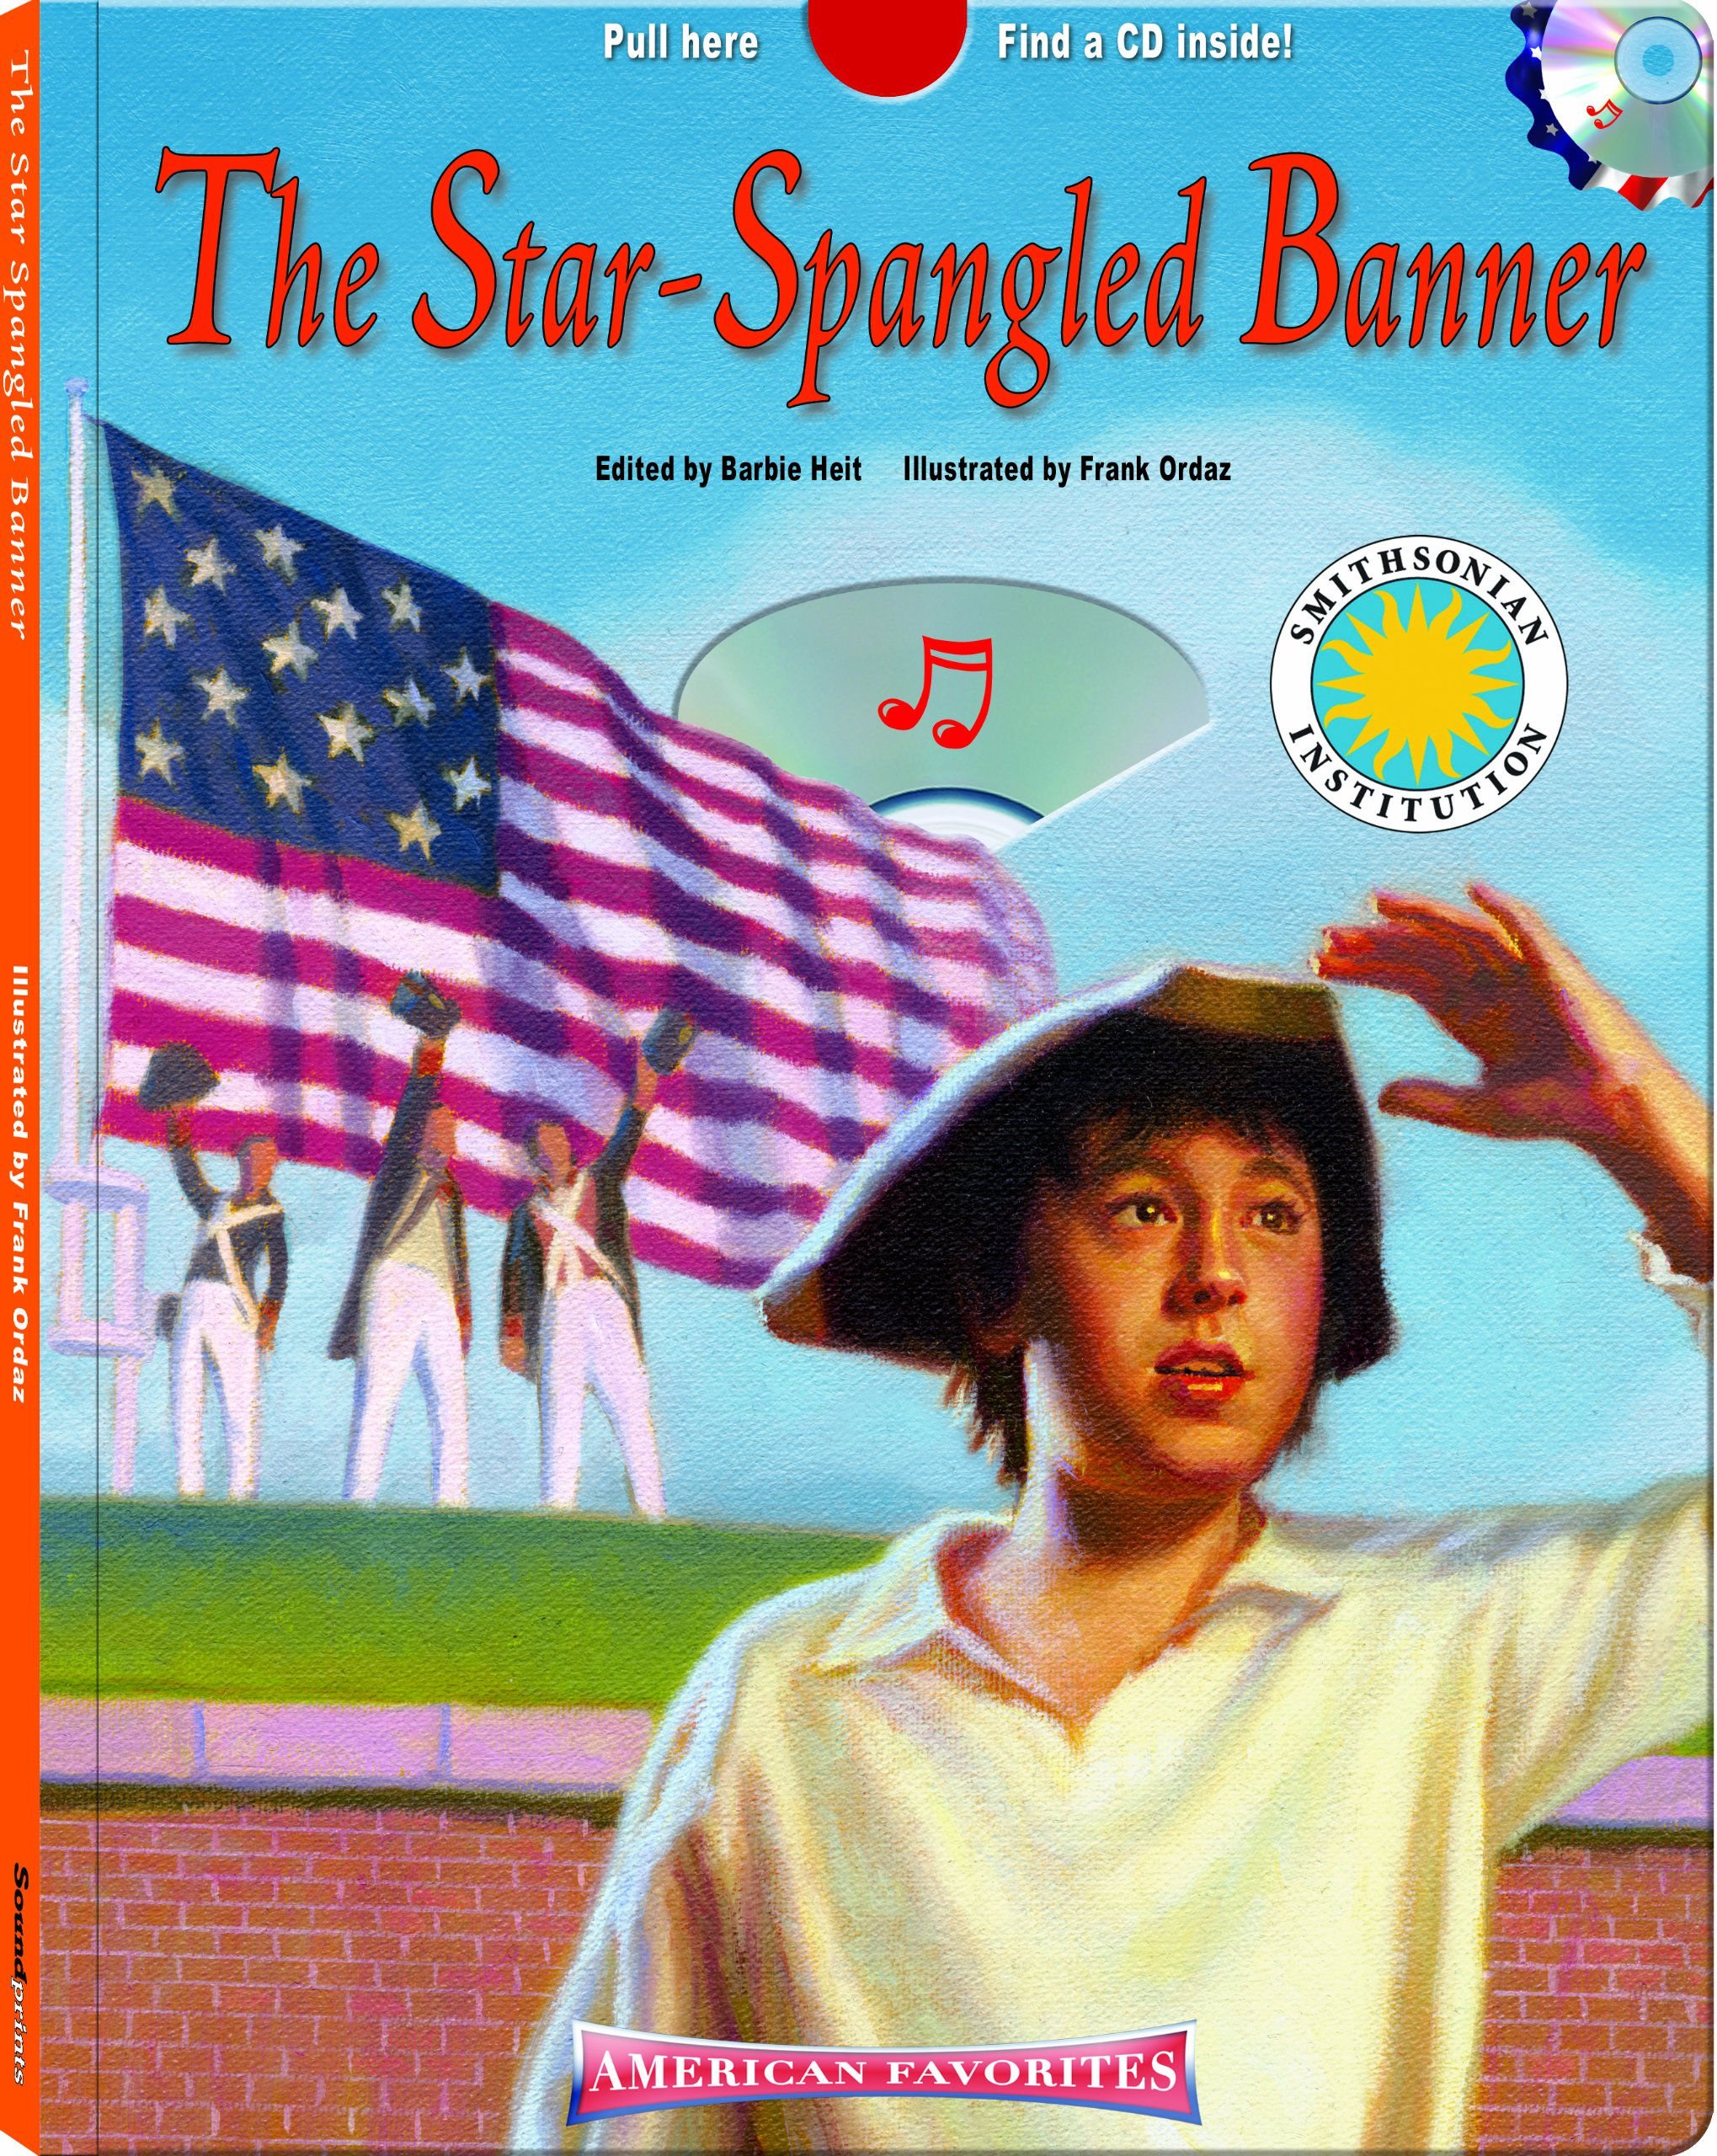 Download The Star Spangled Banner - a Smithsonian American Favorites Book (with sing-along audiobook CD and music sheet) (Americas Favorites) ebook